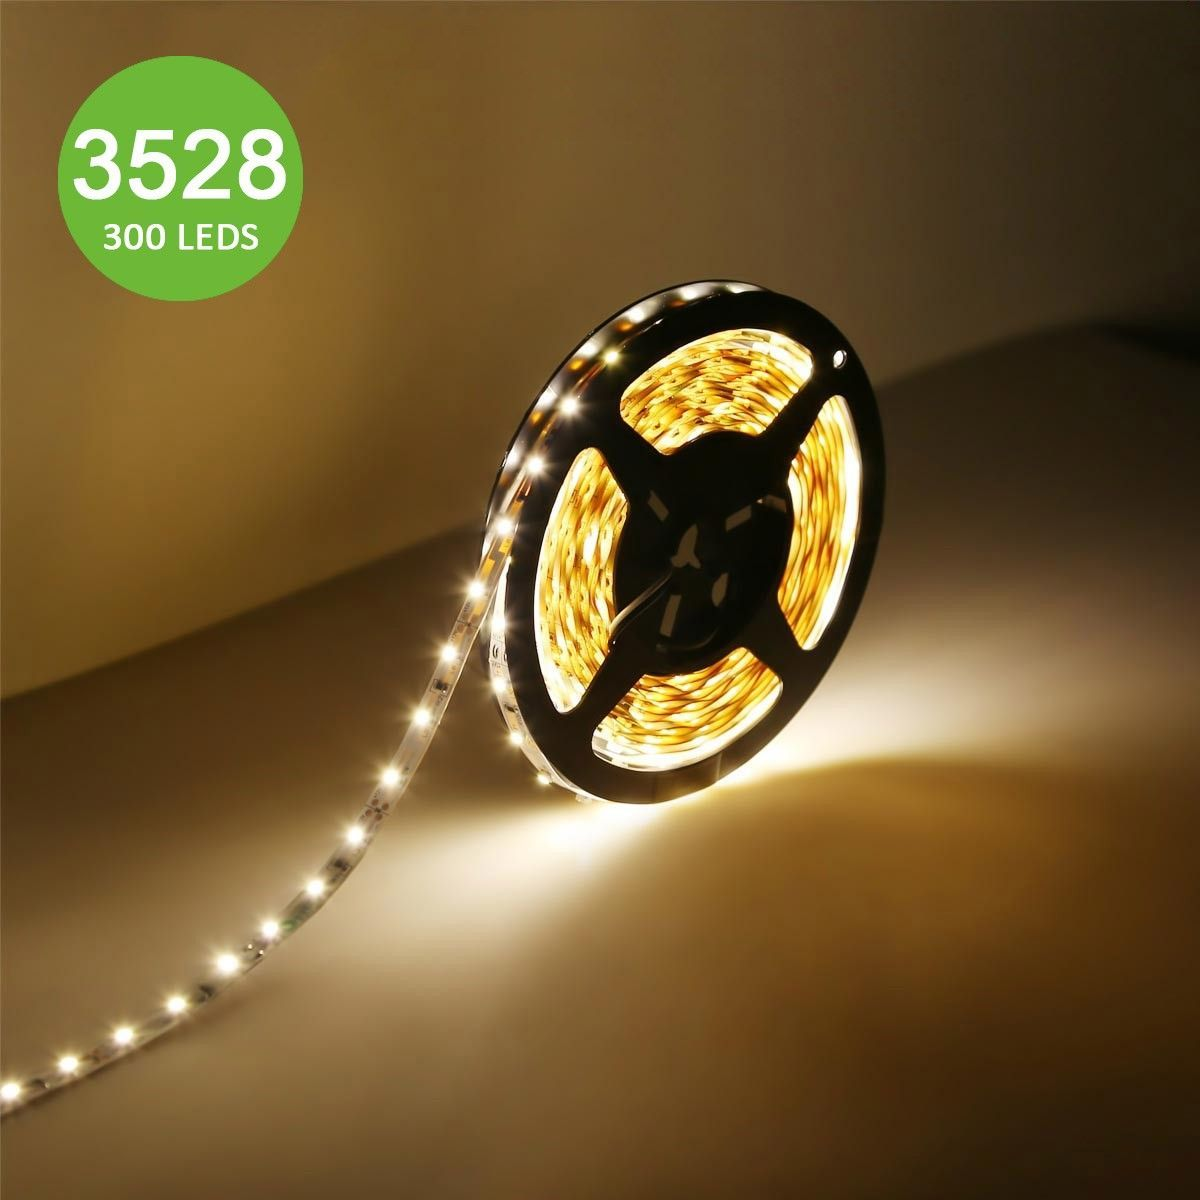 Le 12v Led Lichtstreifen Flexibel Smd 2835 16 4 Fuss Tape Light Fur Zuhause Kuche Party Weihna Strip Lighting Led Strip Lighting Flexible Led Strip Lights